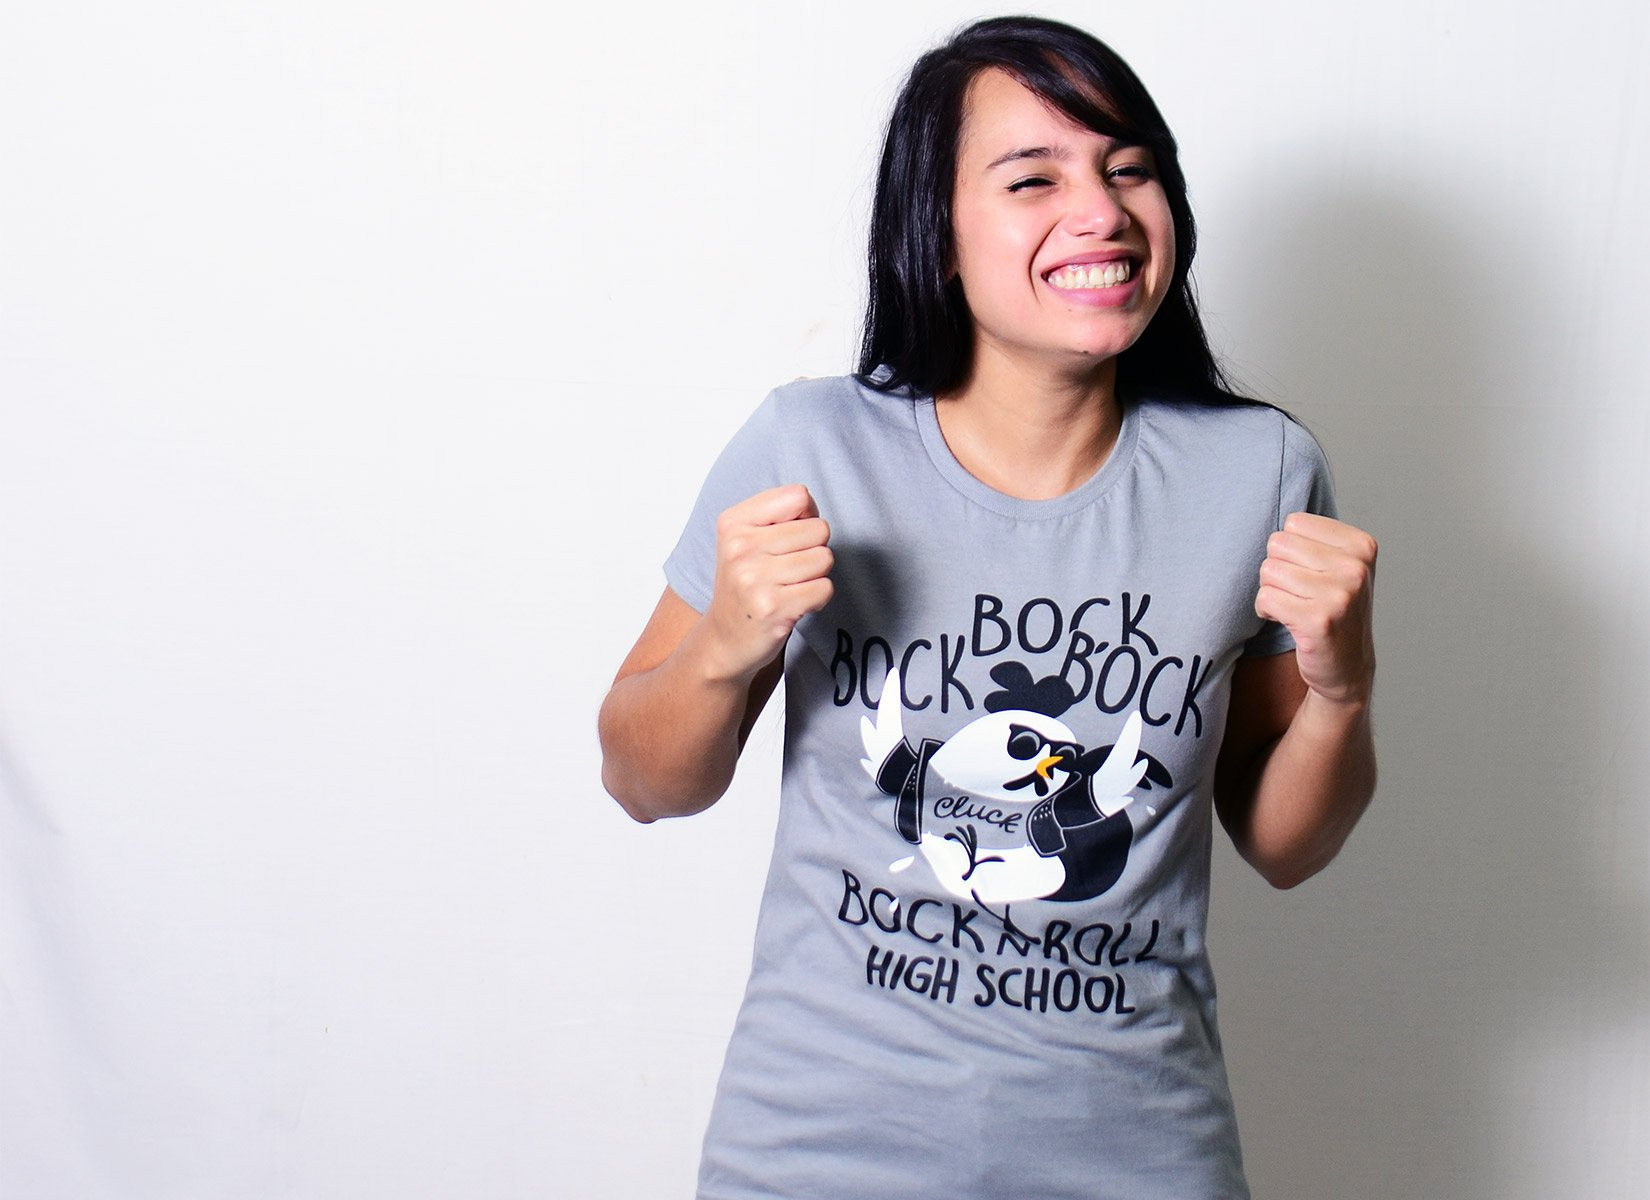 Bock n' Roll High School on Womens T-Shirt